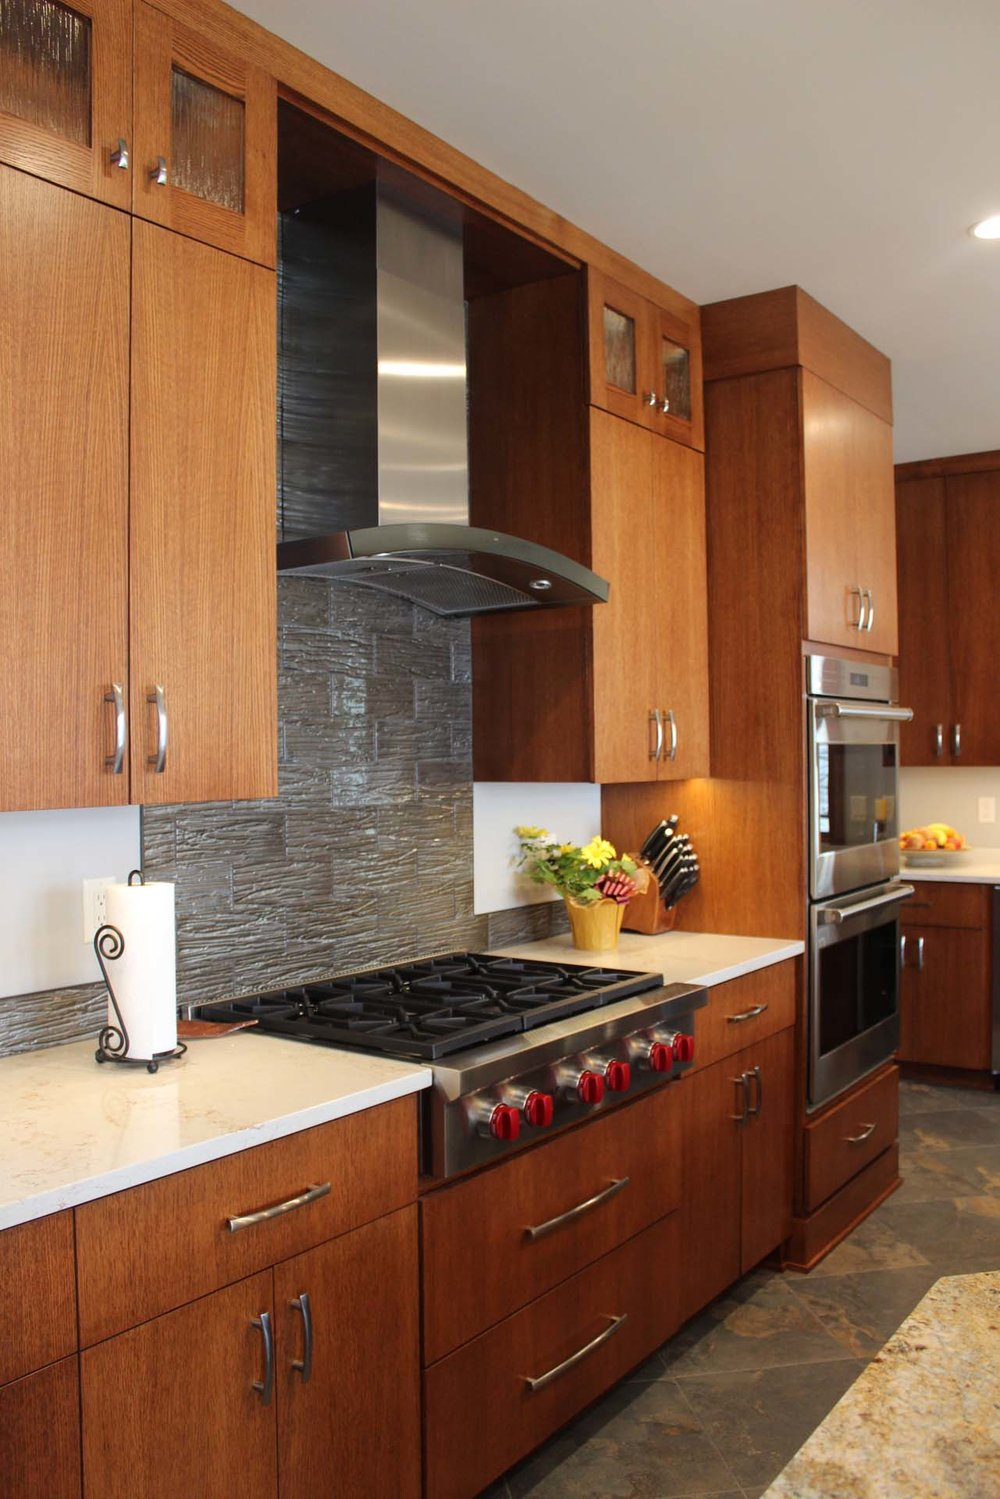 RMH_Golden_Lake_Contemporary_Kitchen3.jpg